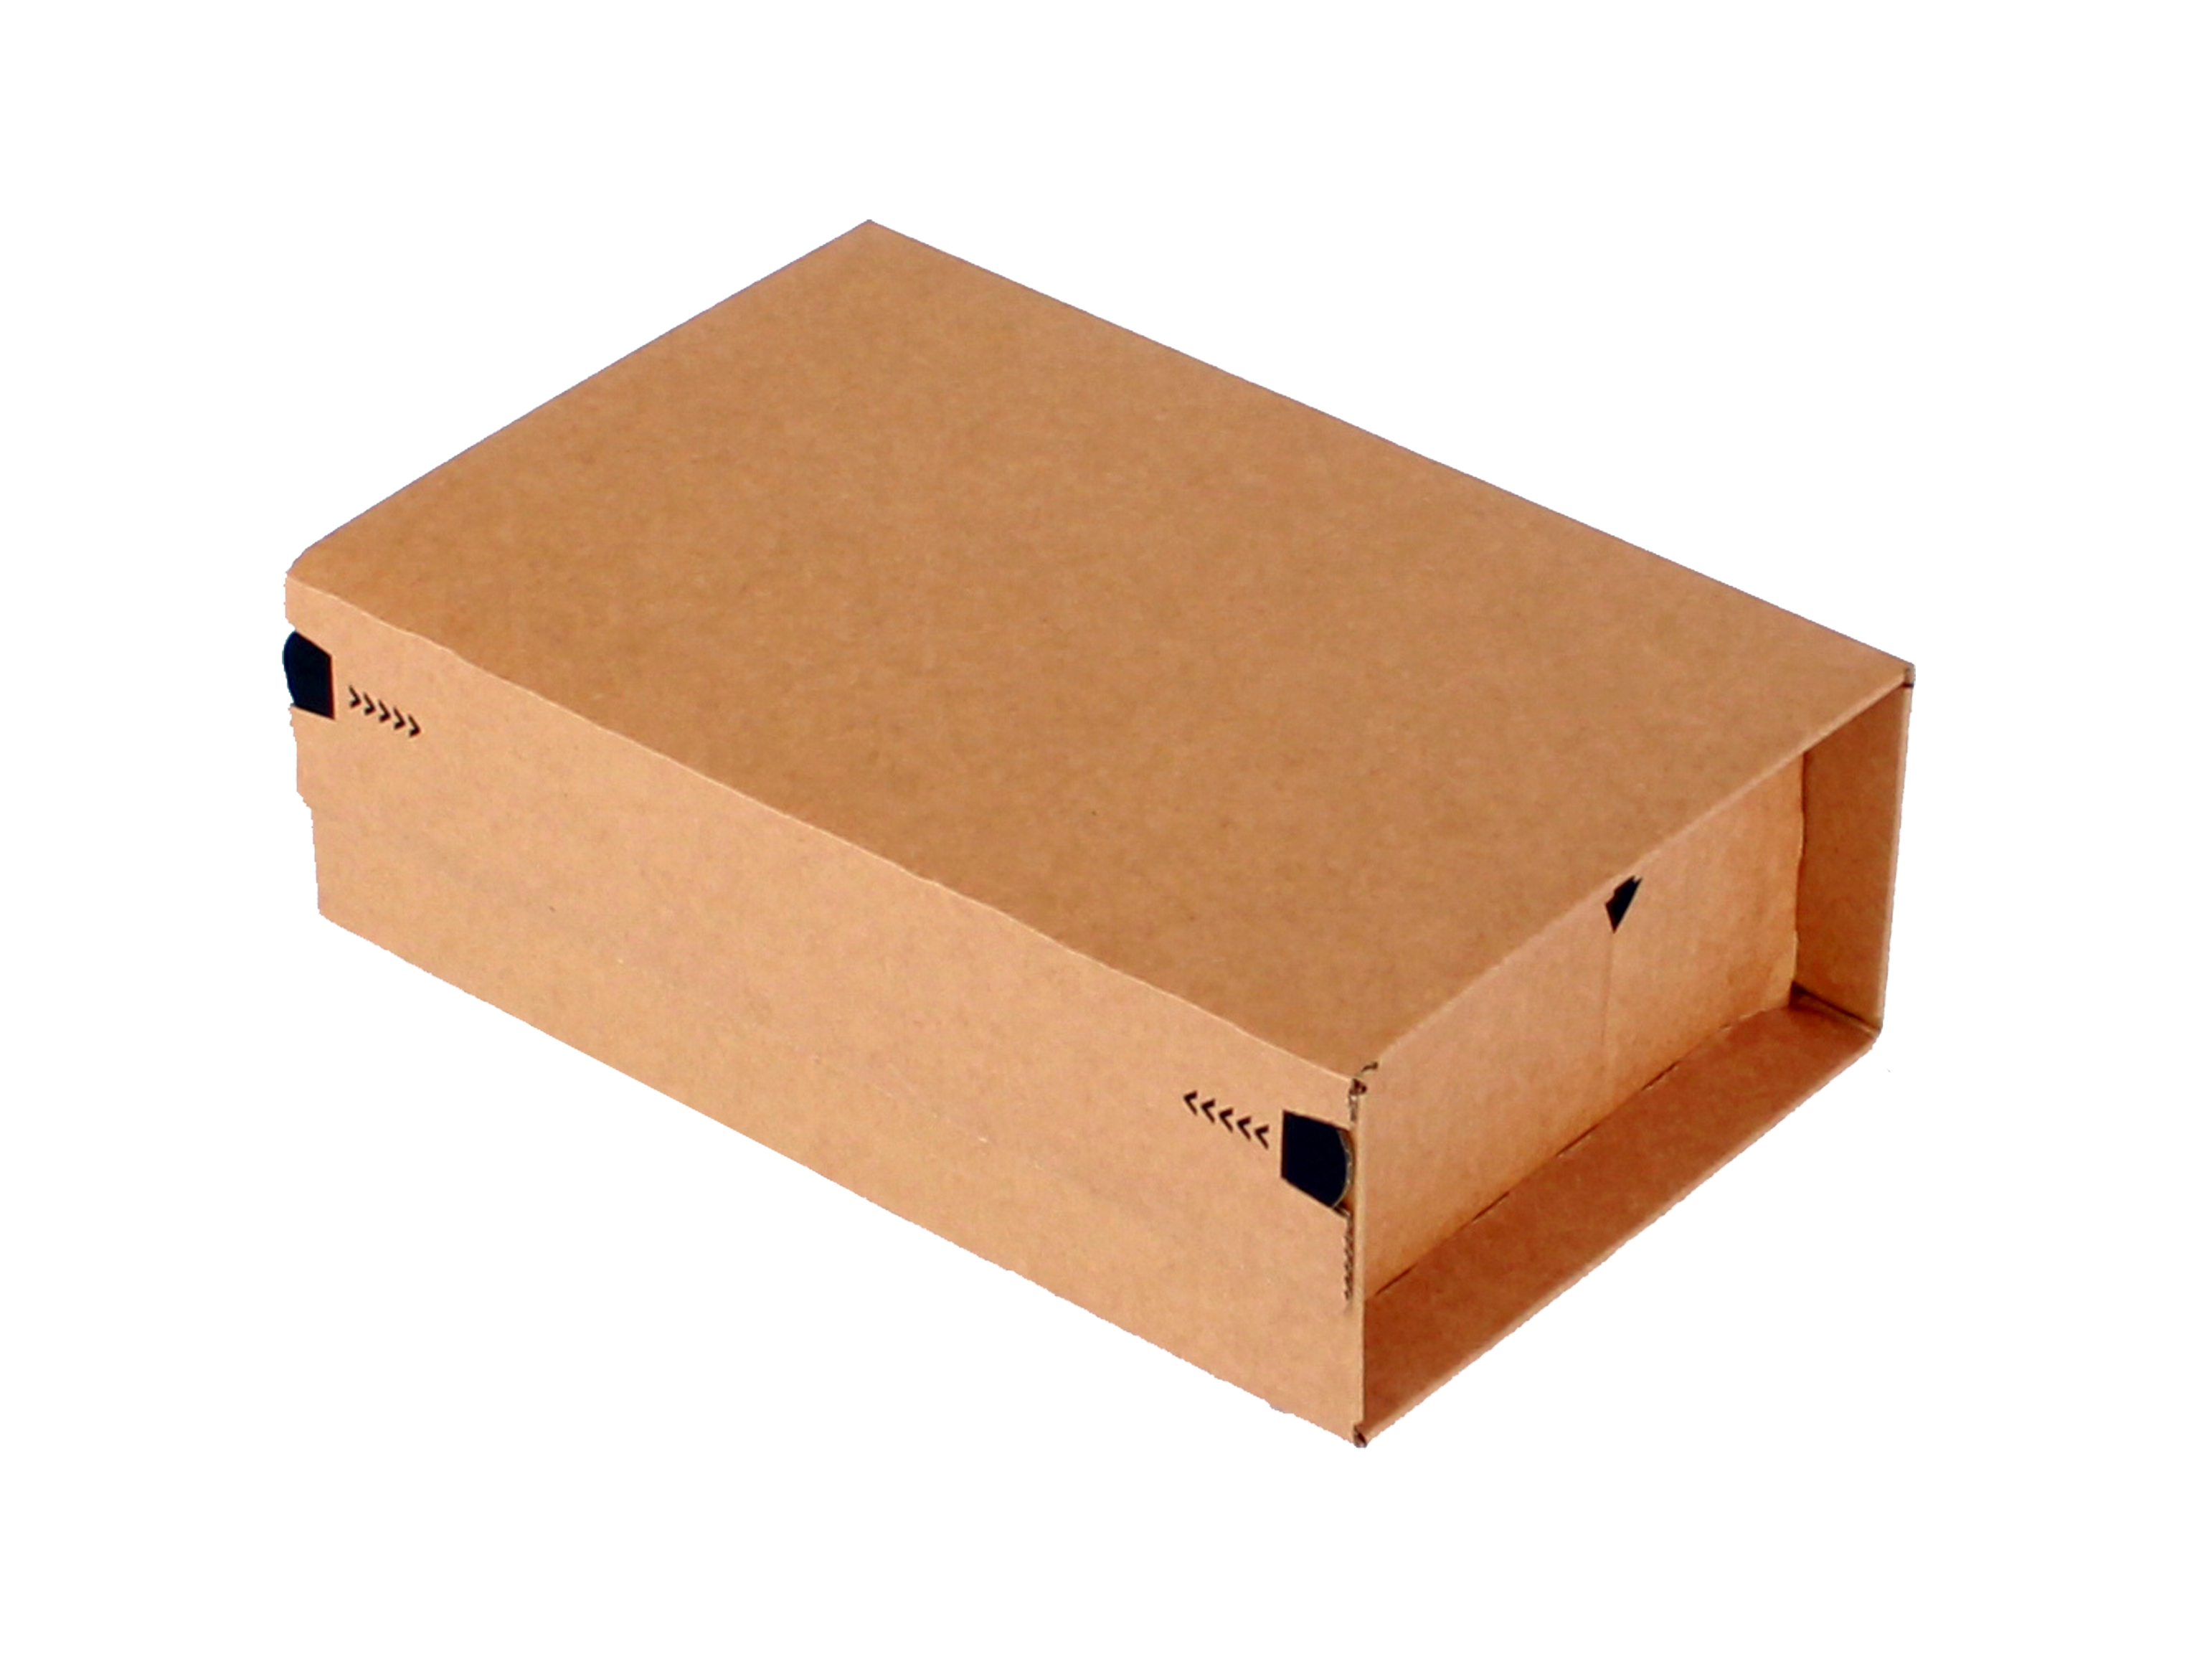 Postbox Secure 280x183x100 mm DIN A5+